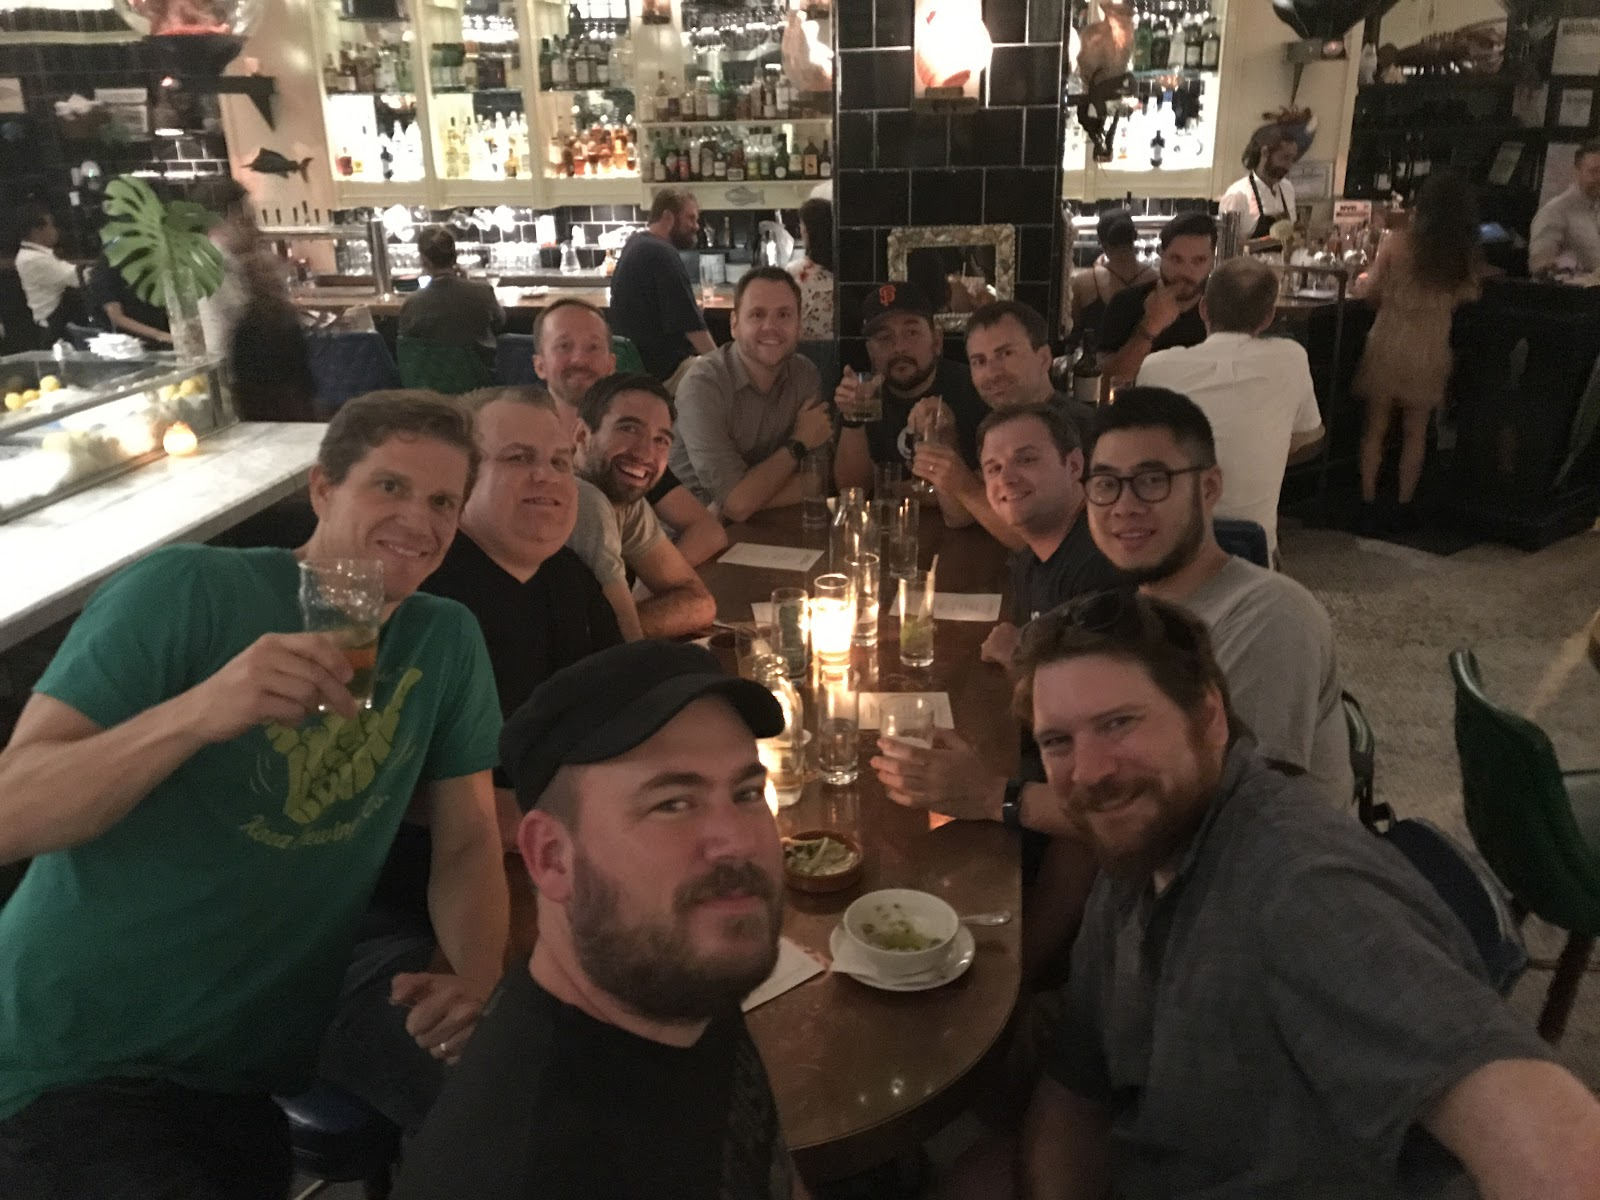 A Mediacurrent team dinner during the event